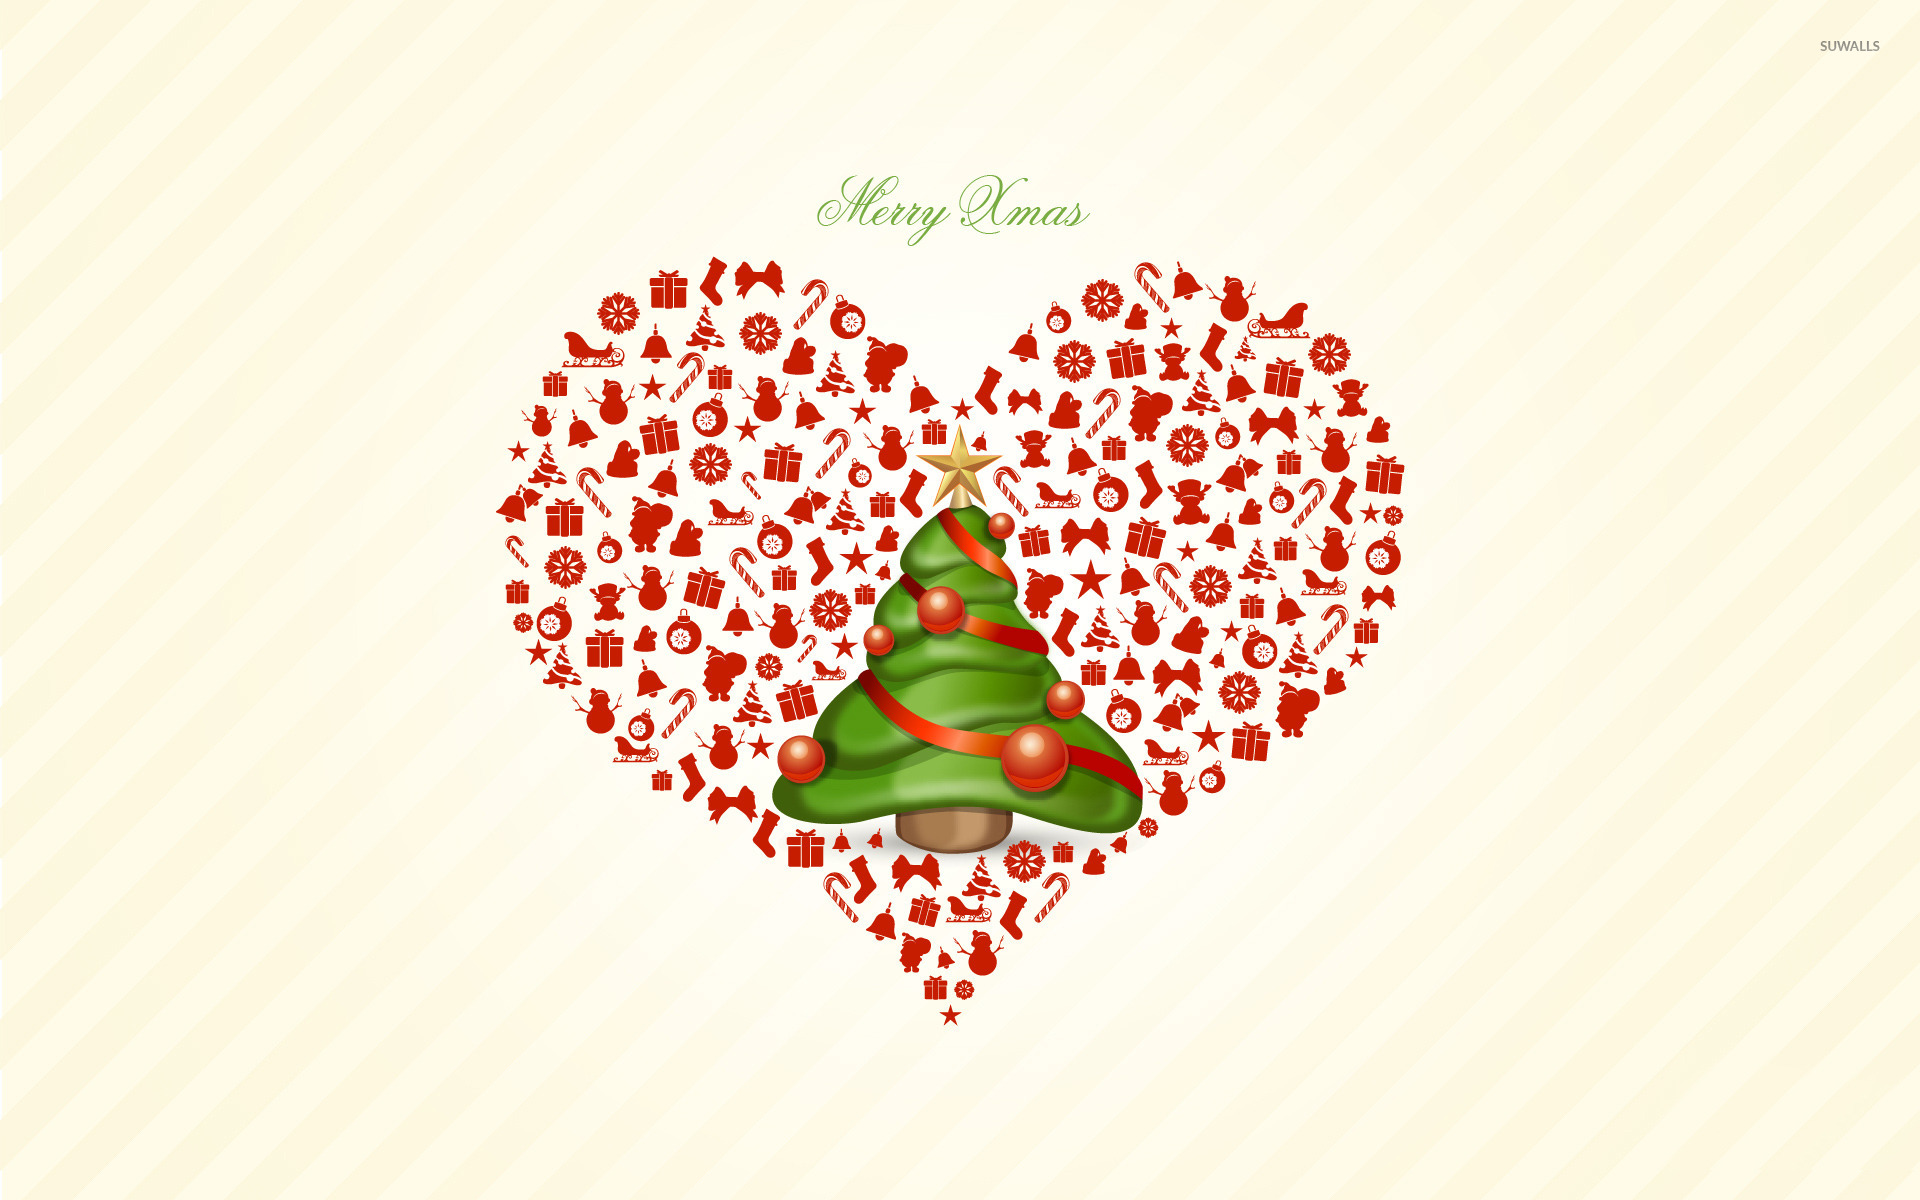 Simple Wallpaper Love Merry Christmas - merry-christmas-40997-1920x1200  Collection_206699.jpg